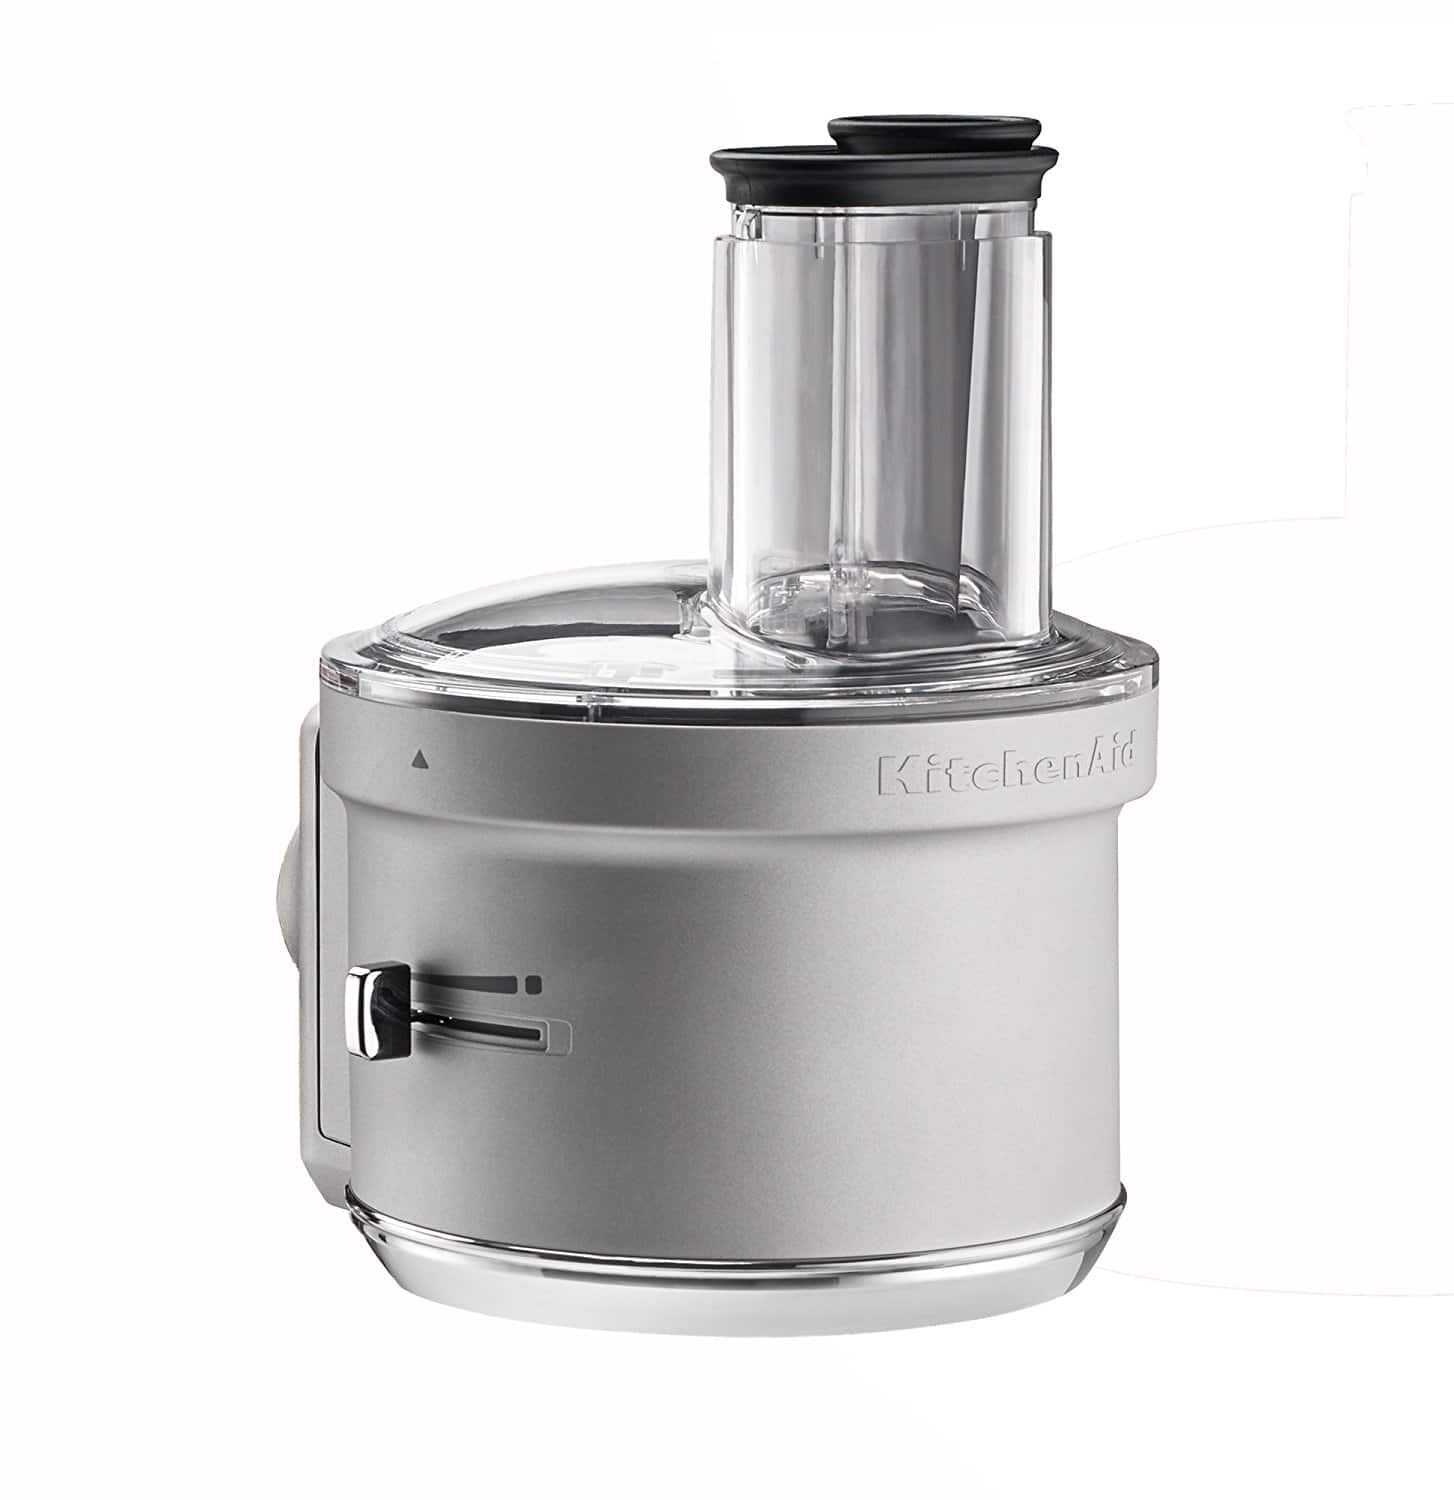 KitchenAid KSM2FPA Food Processor Attachment with Commercial Style Dicing Kit  $90 + FS with Prime